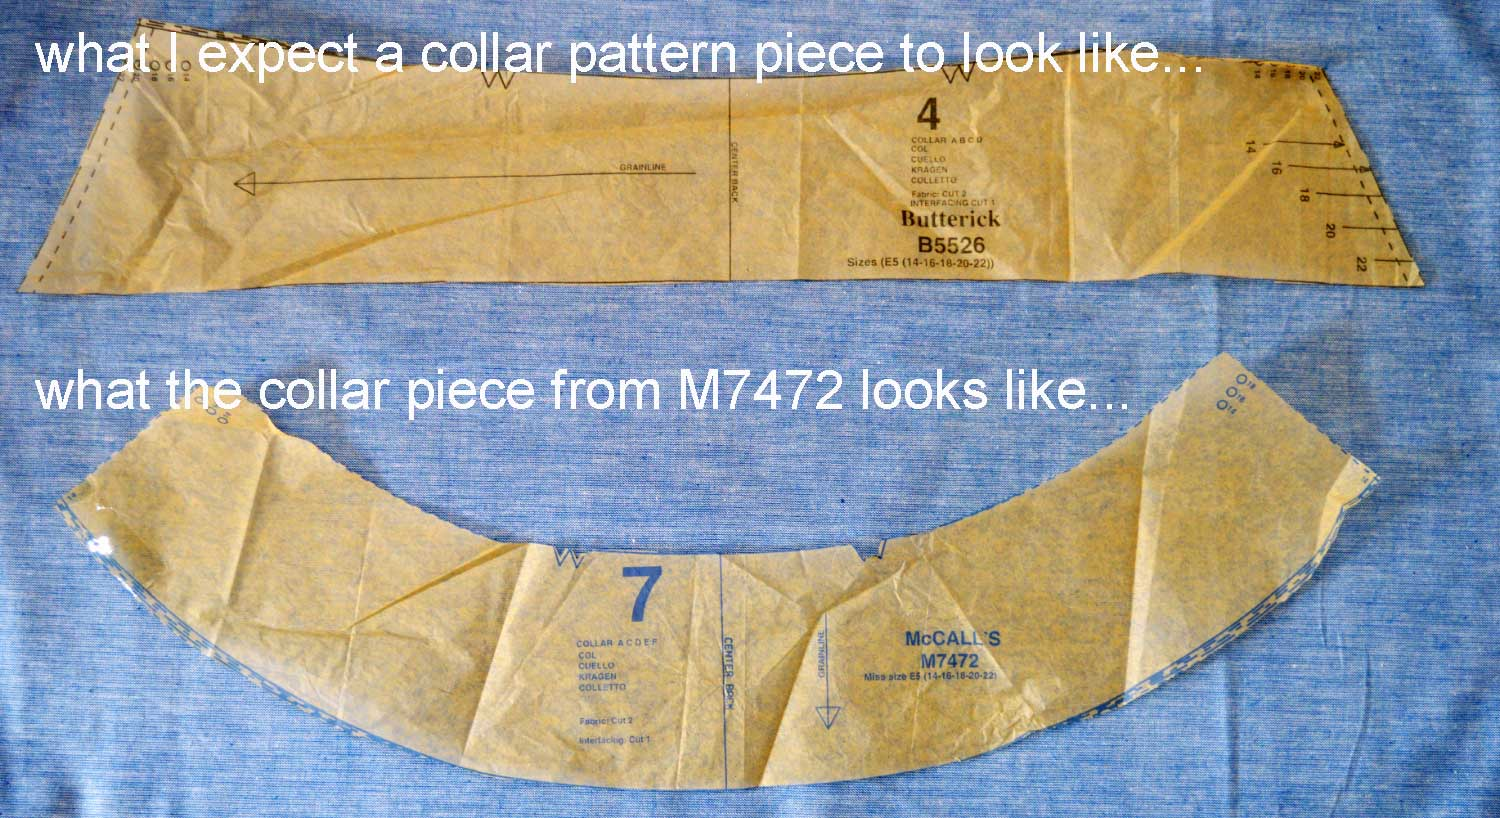 Holm Sown: McCalls M7472 raglan sleeve shirt - collar comparison